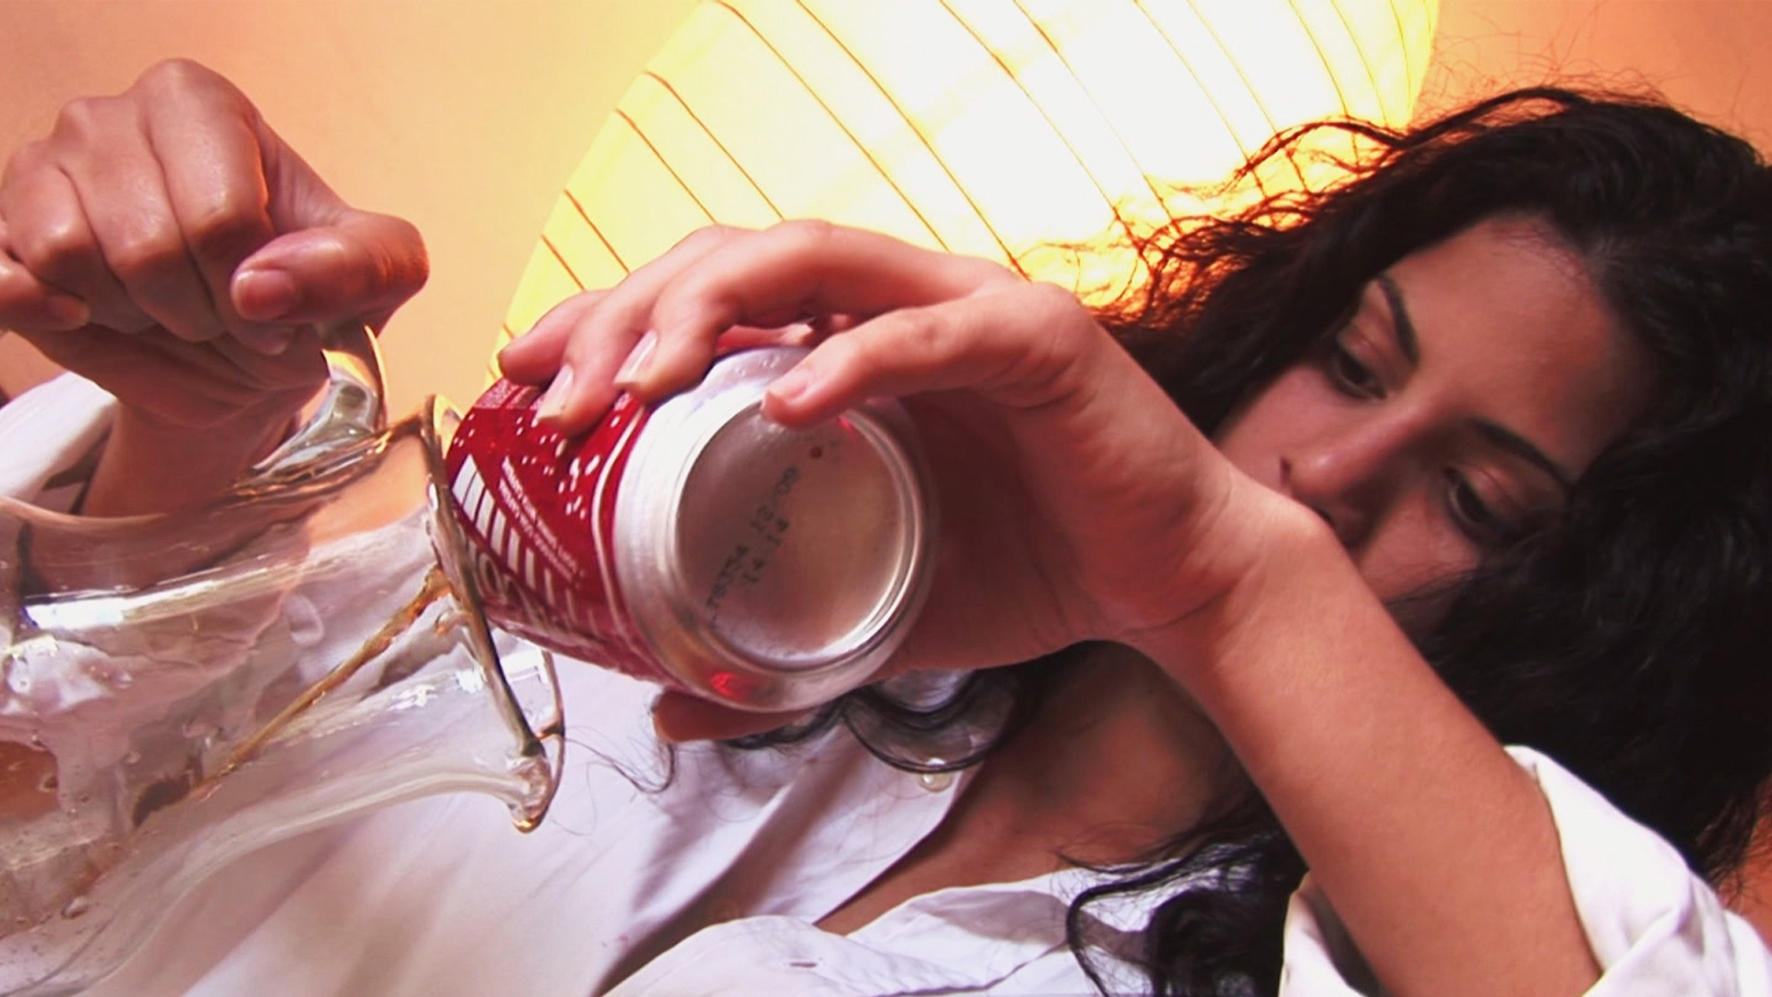 5.-Merienda-2009-Video-Performance-Naivy-Perez